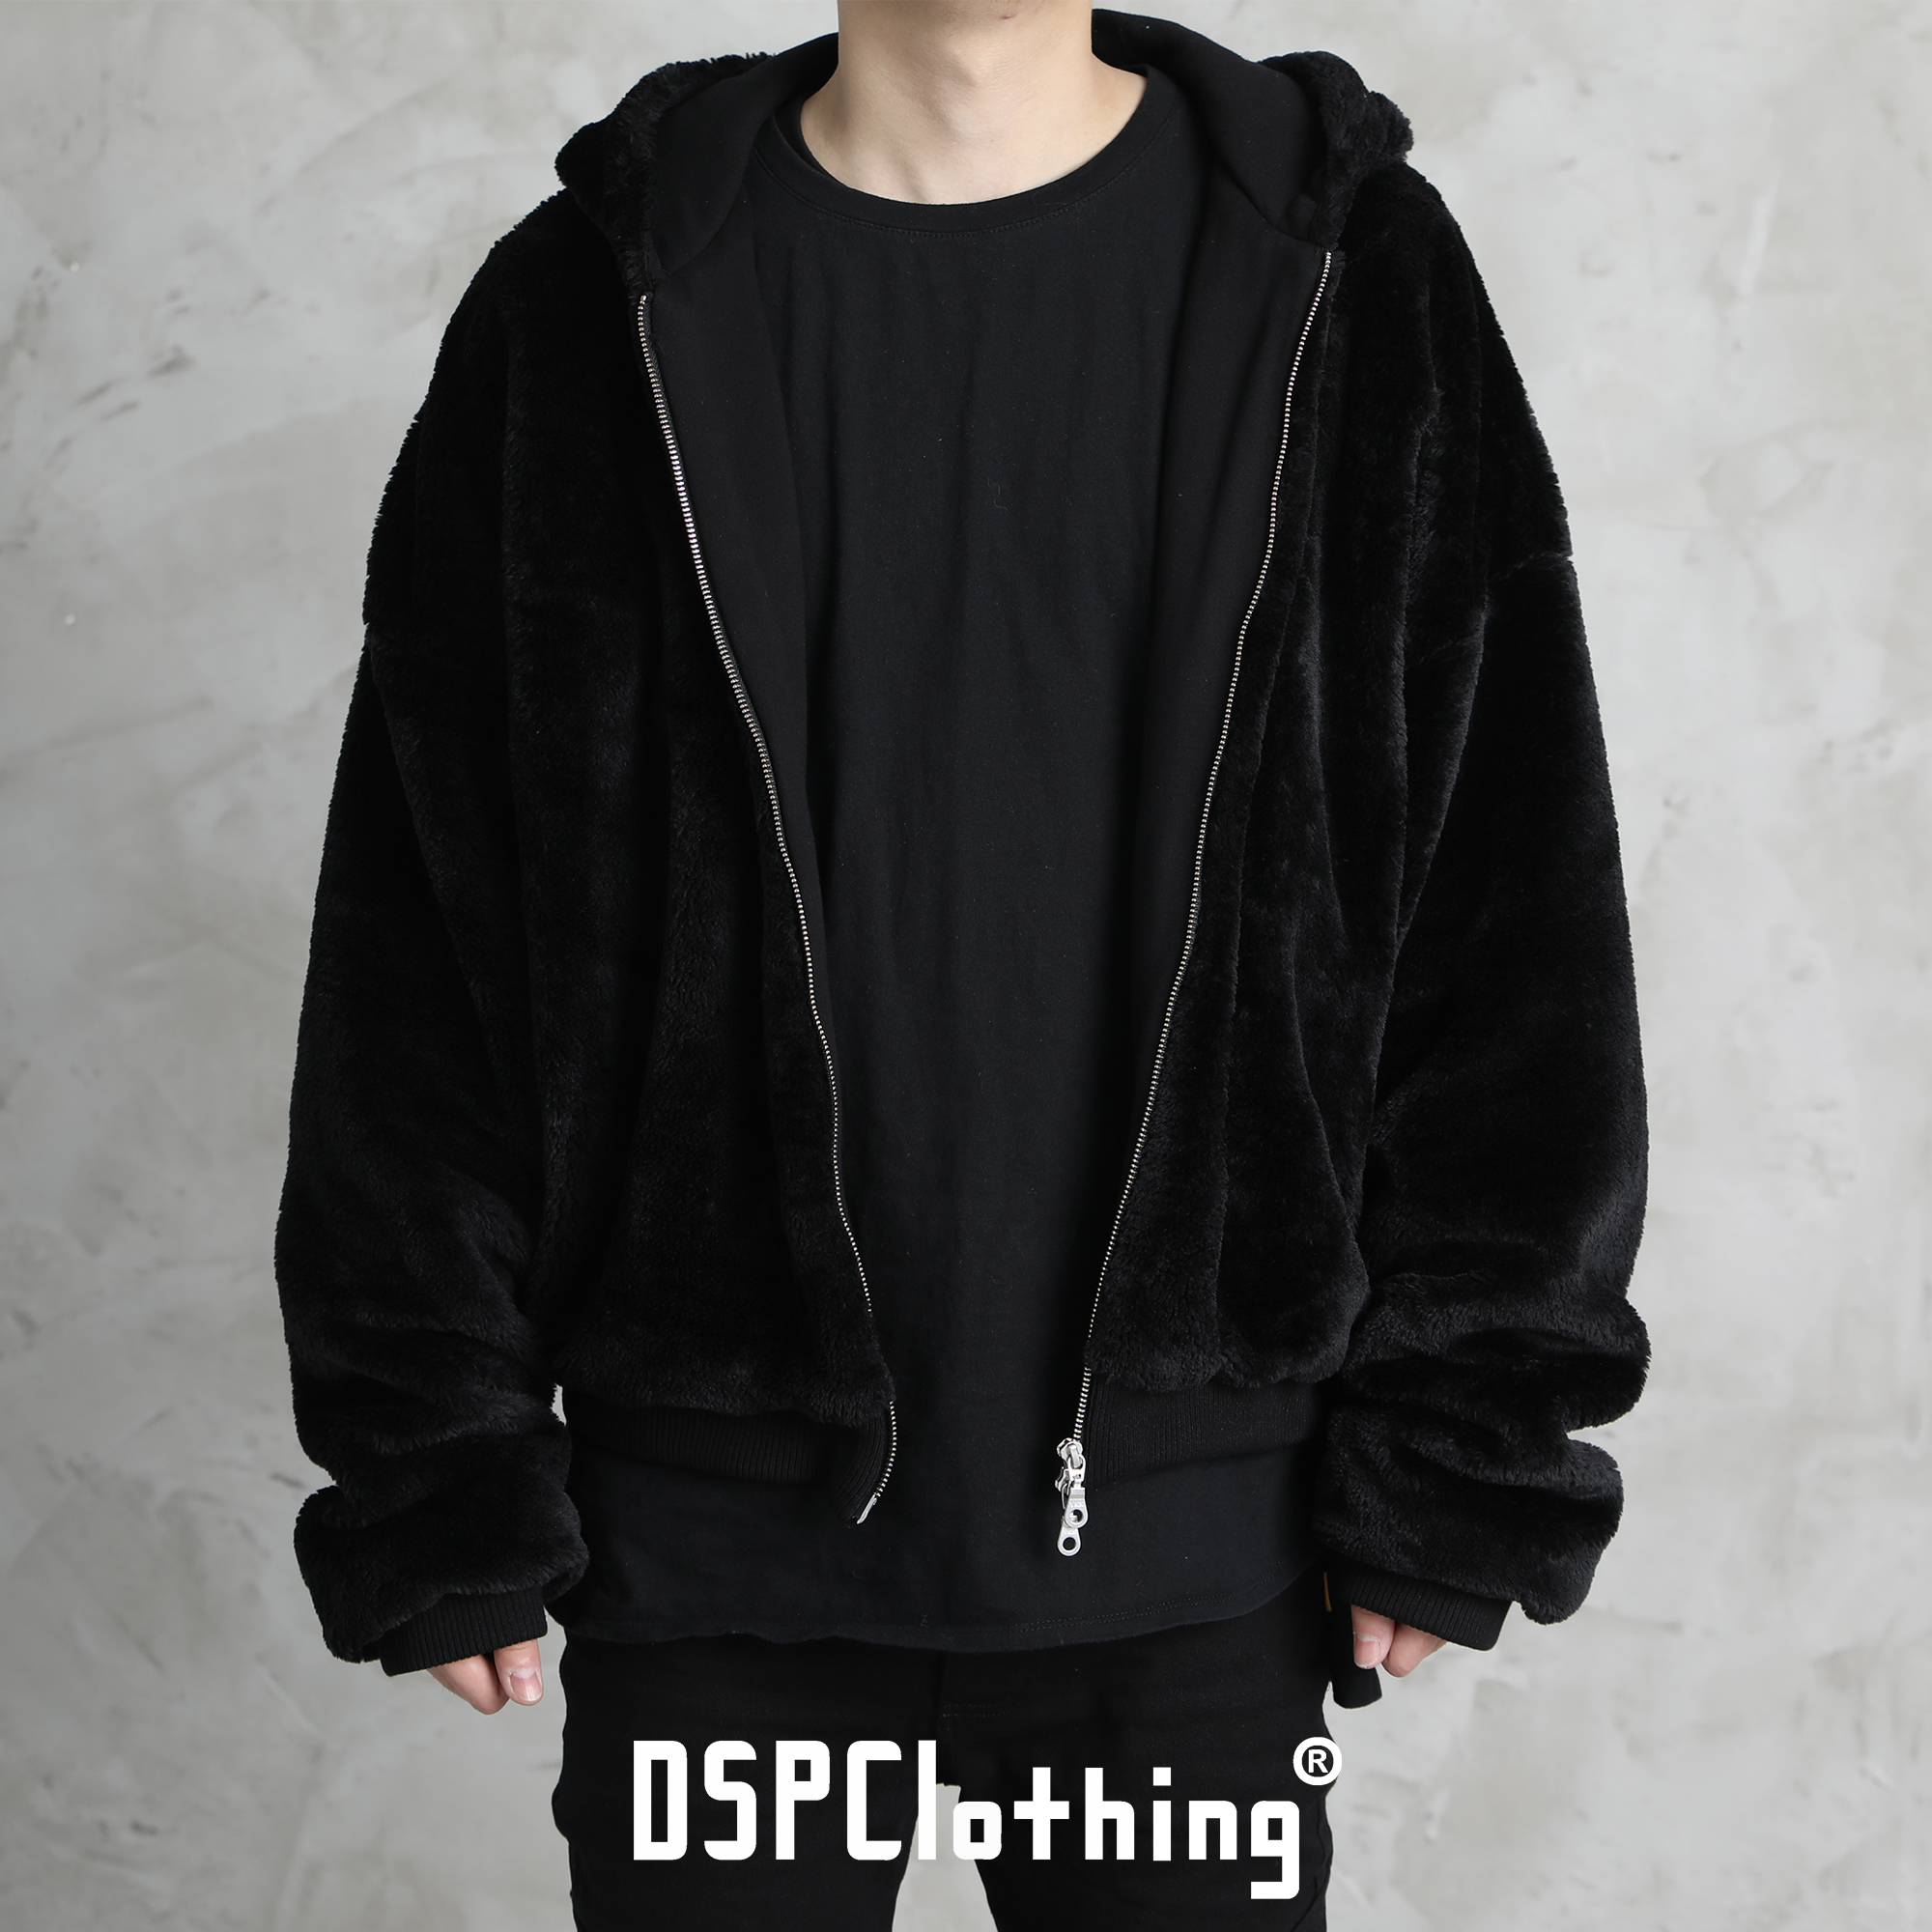 Dspprinting black man-made wool jacket / Cotton Lined loose jacket coat